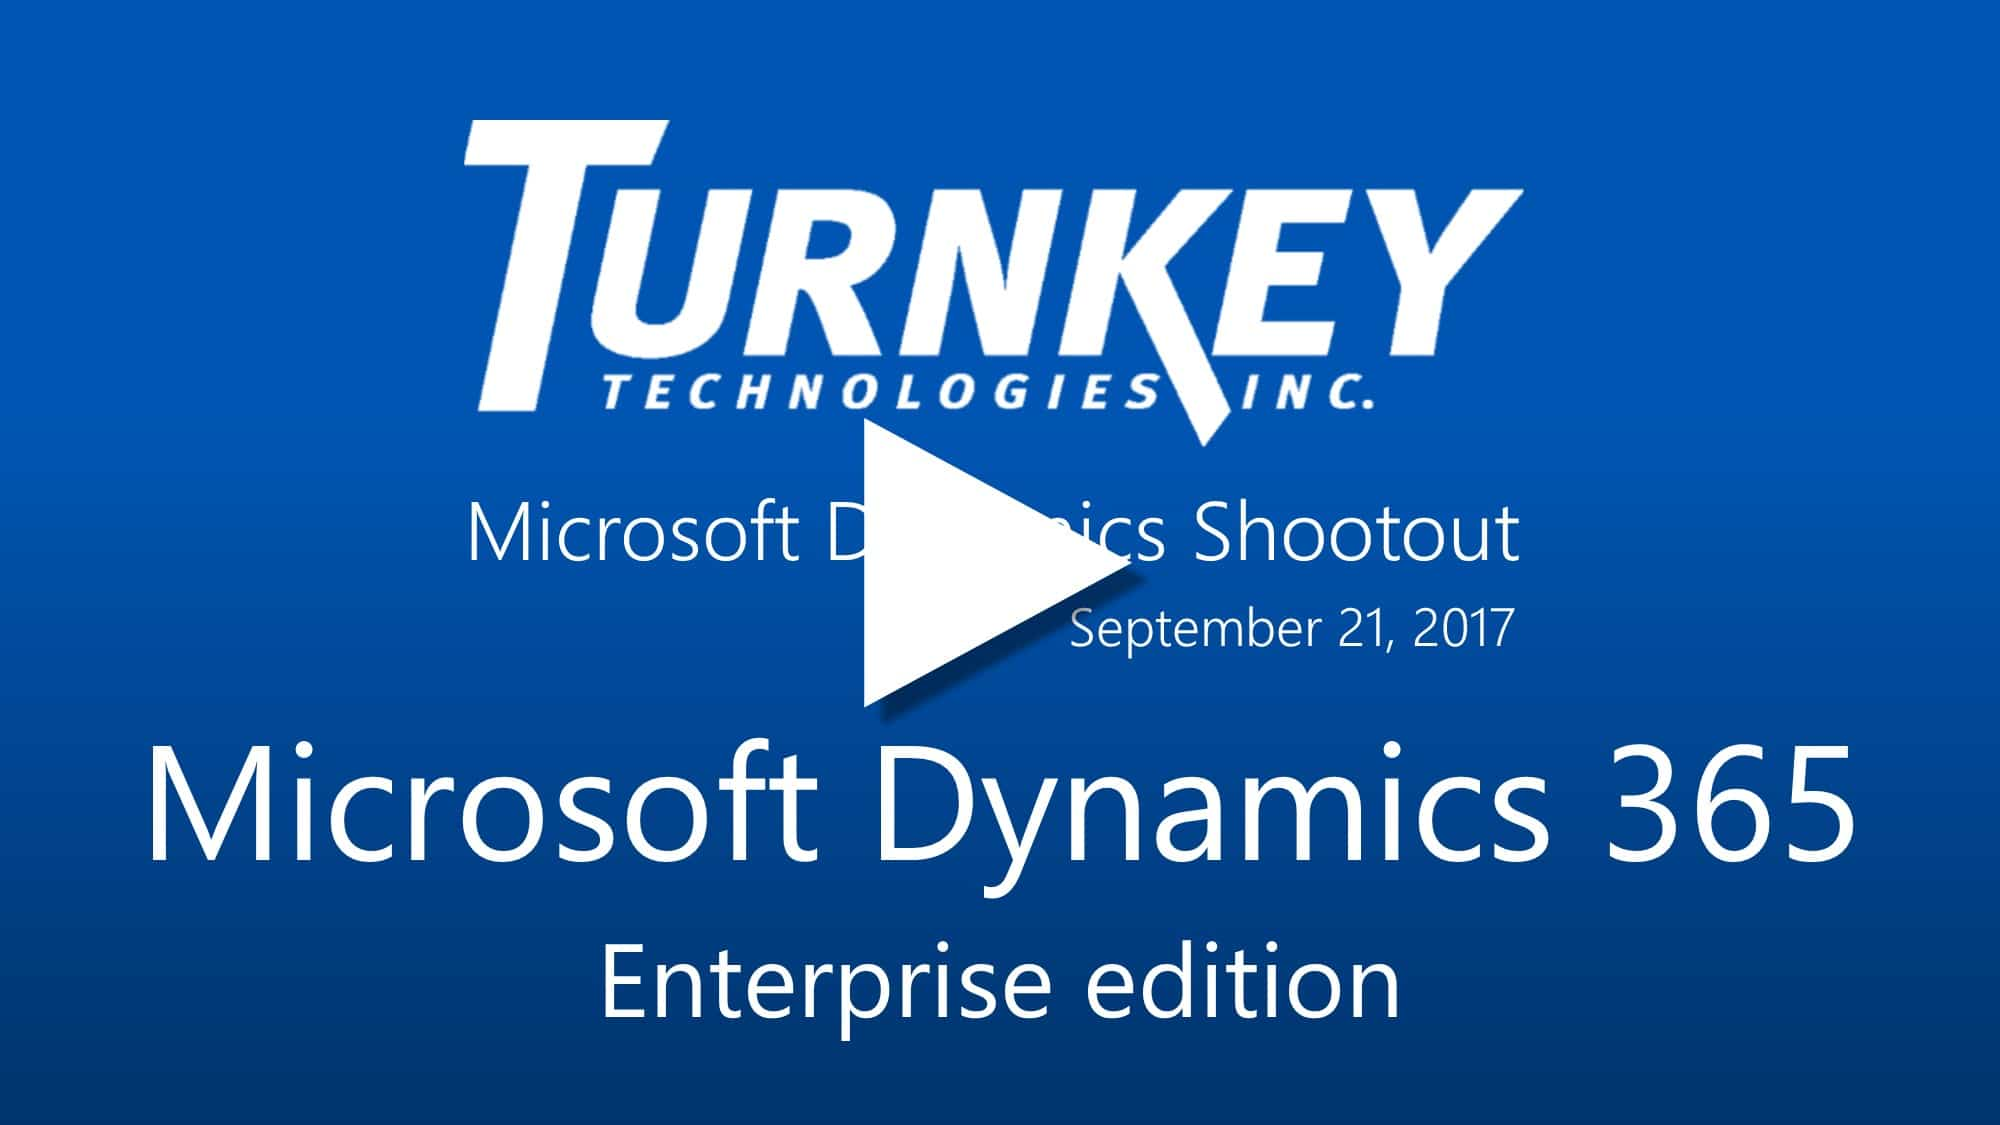 Compare Microsoft Dynamics Business Solutions - Dynamics 365 Enterprise edition